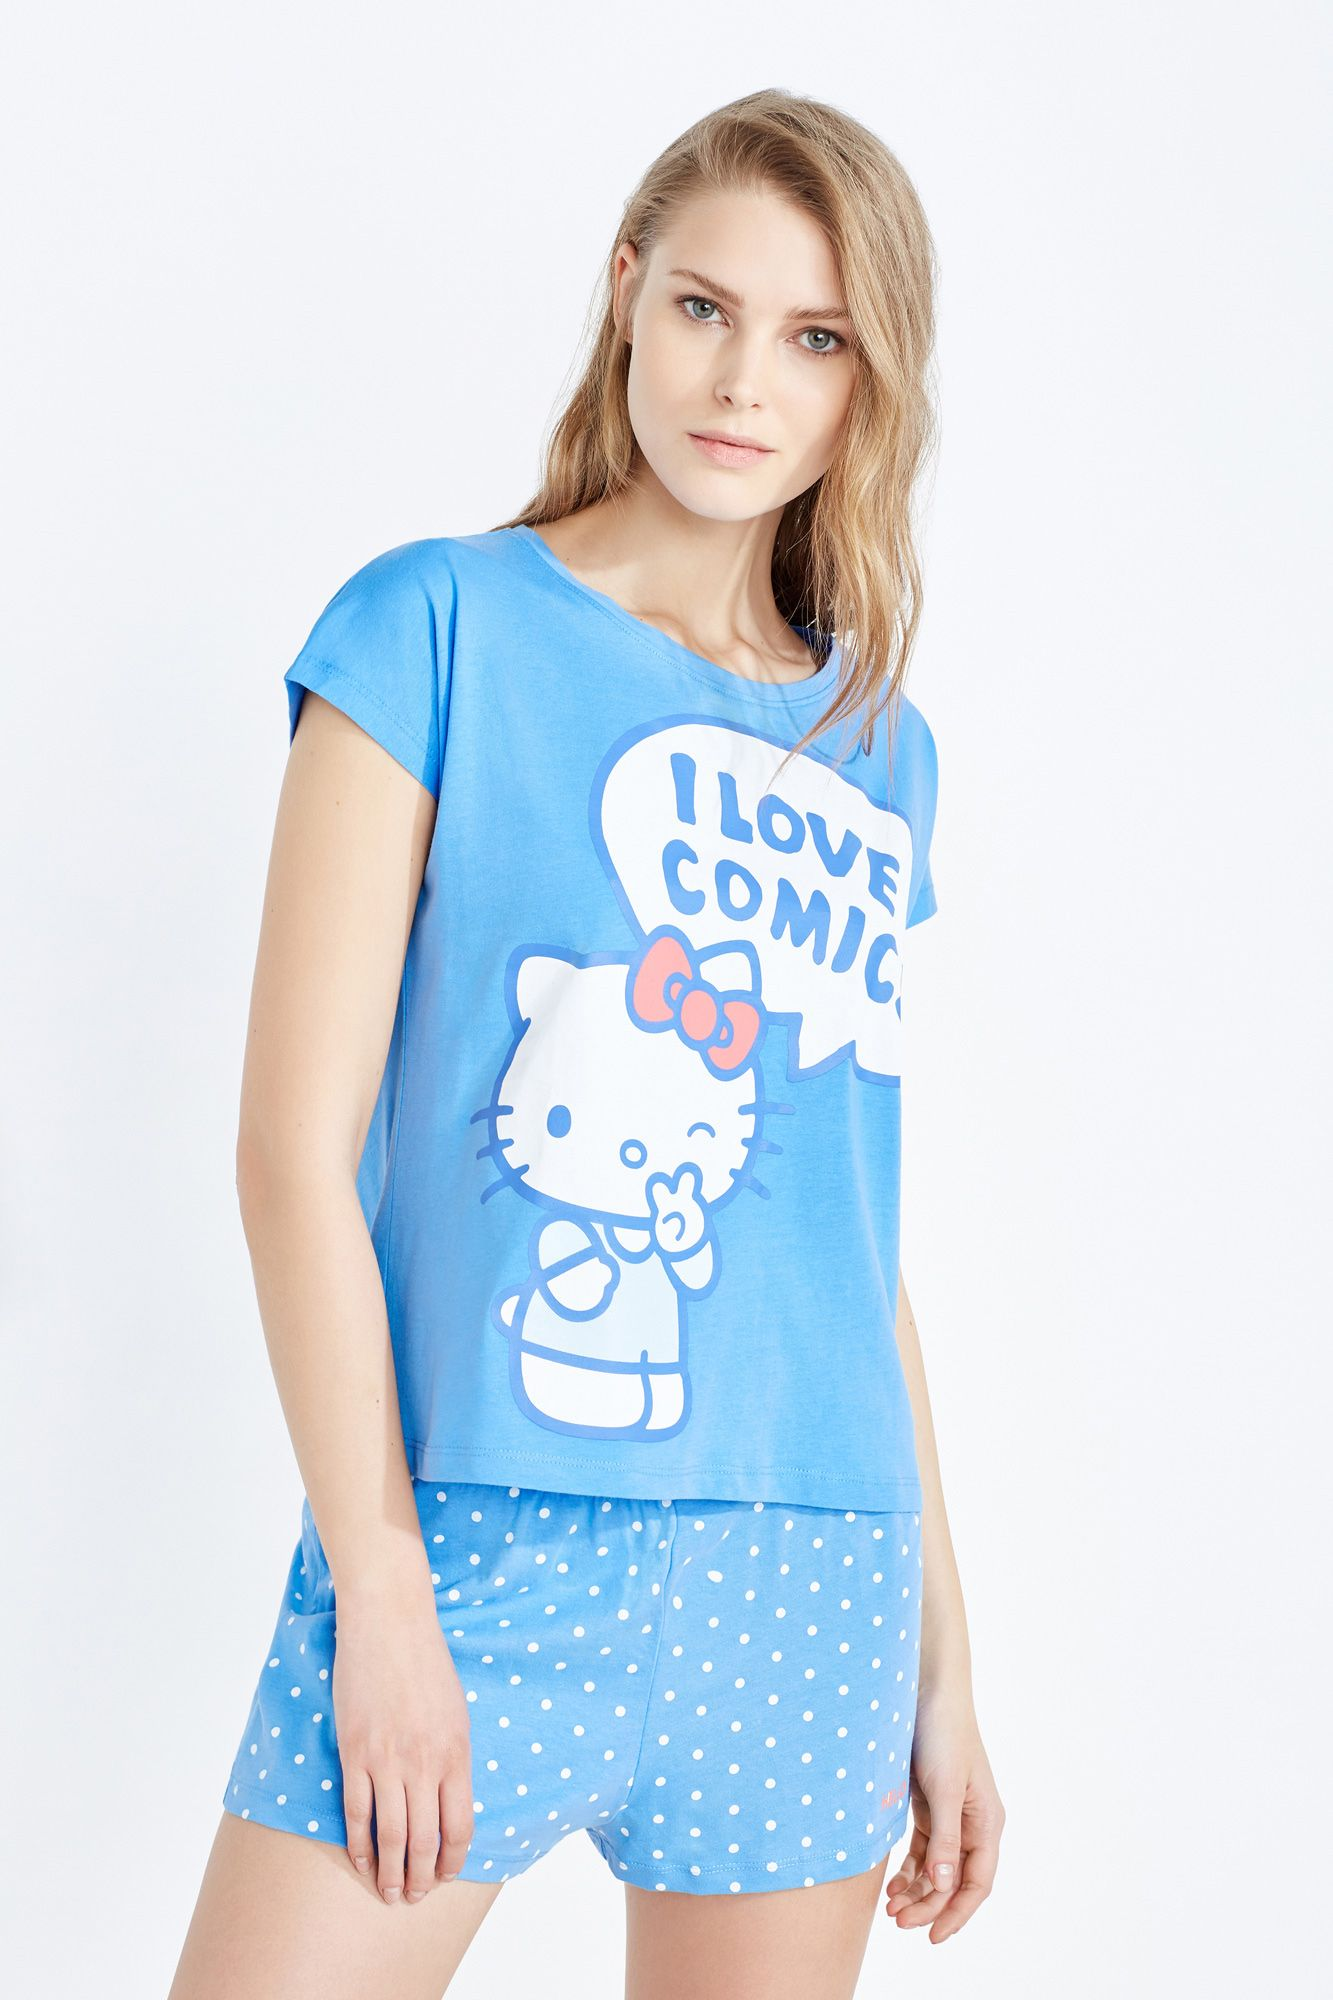 459b6c19f Women'secret - Short Hello Kitty pyjama Hello Kitty, Pajama Shorts, Short  Sleeves